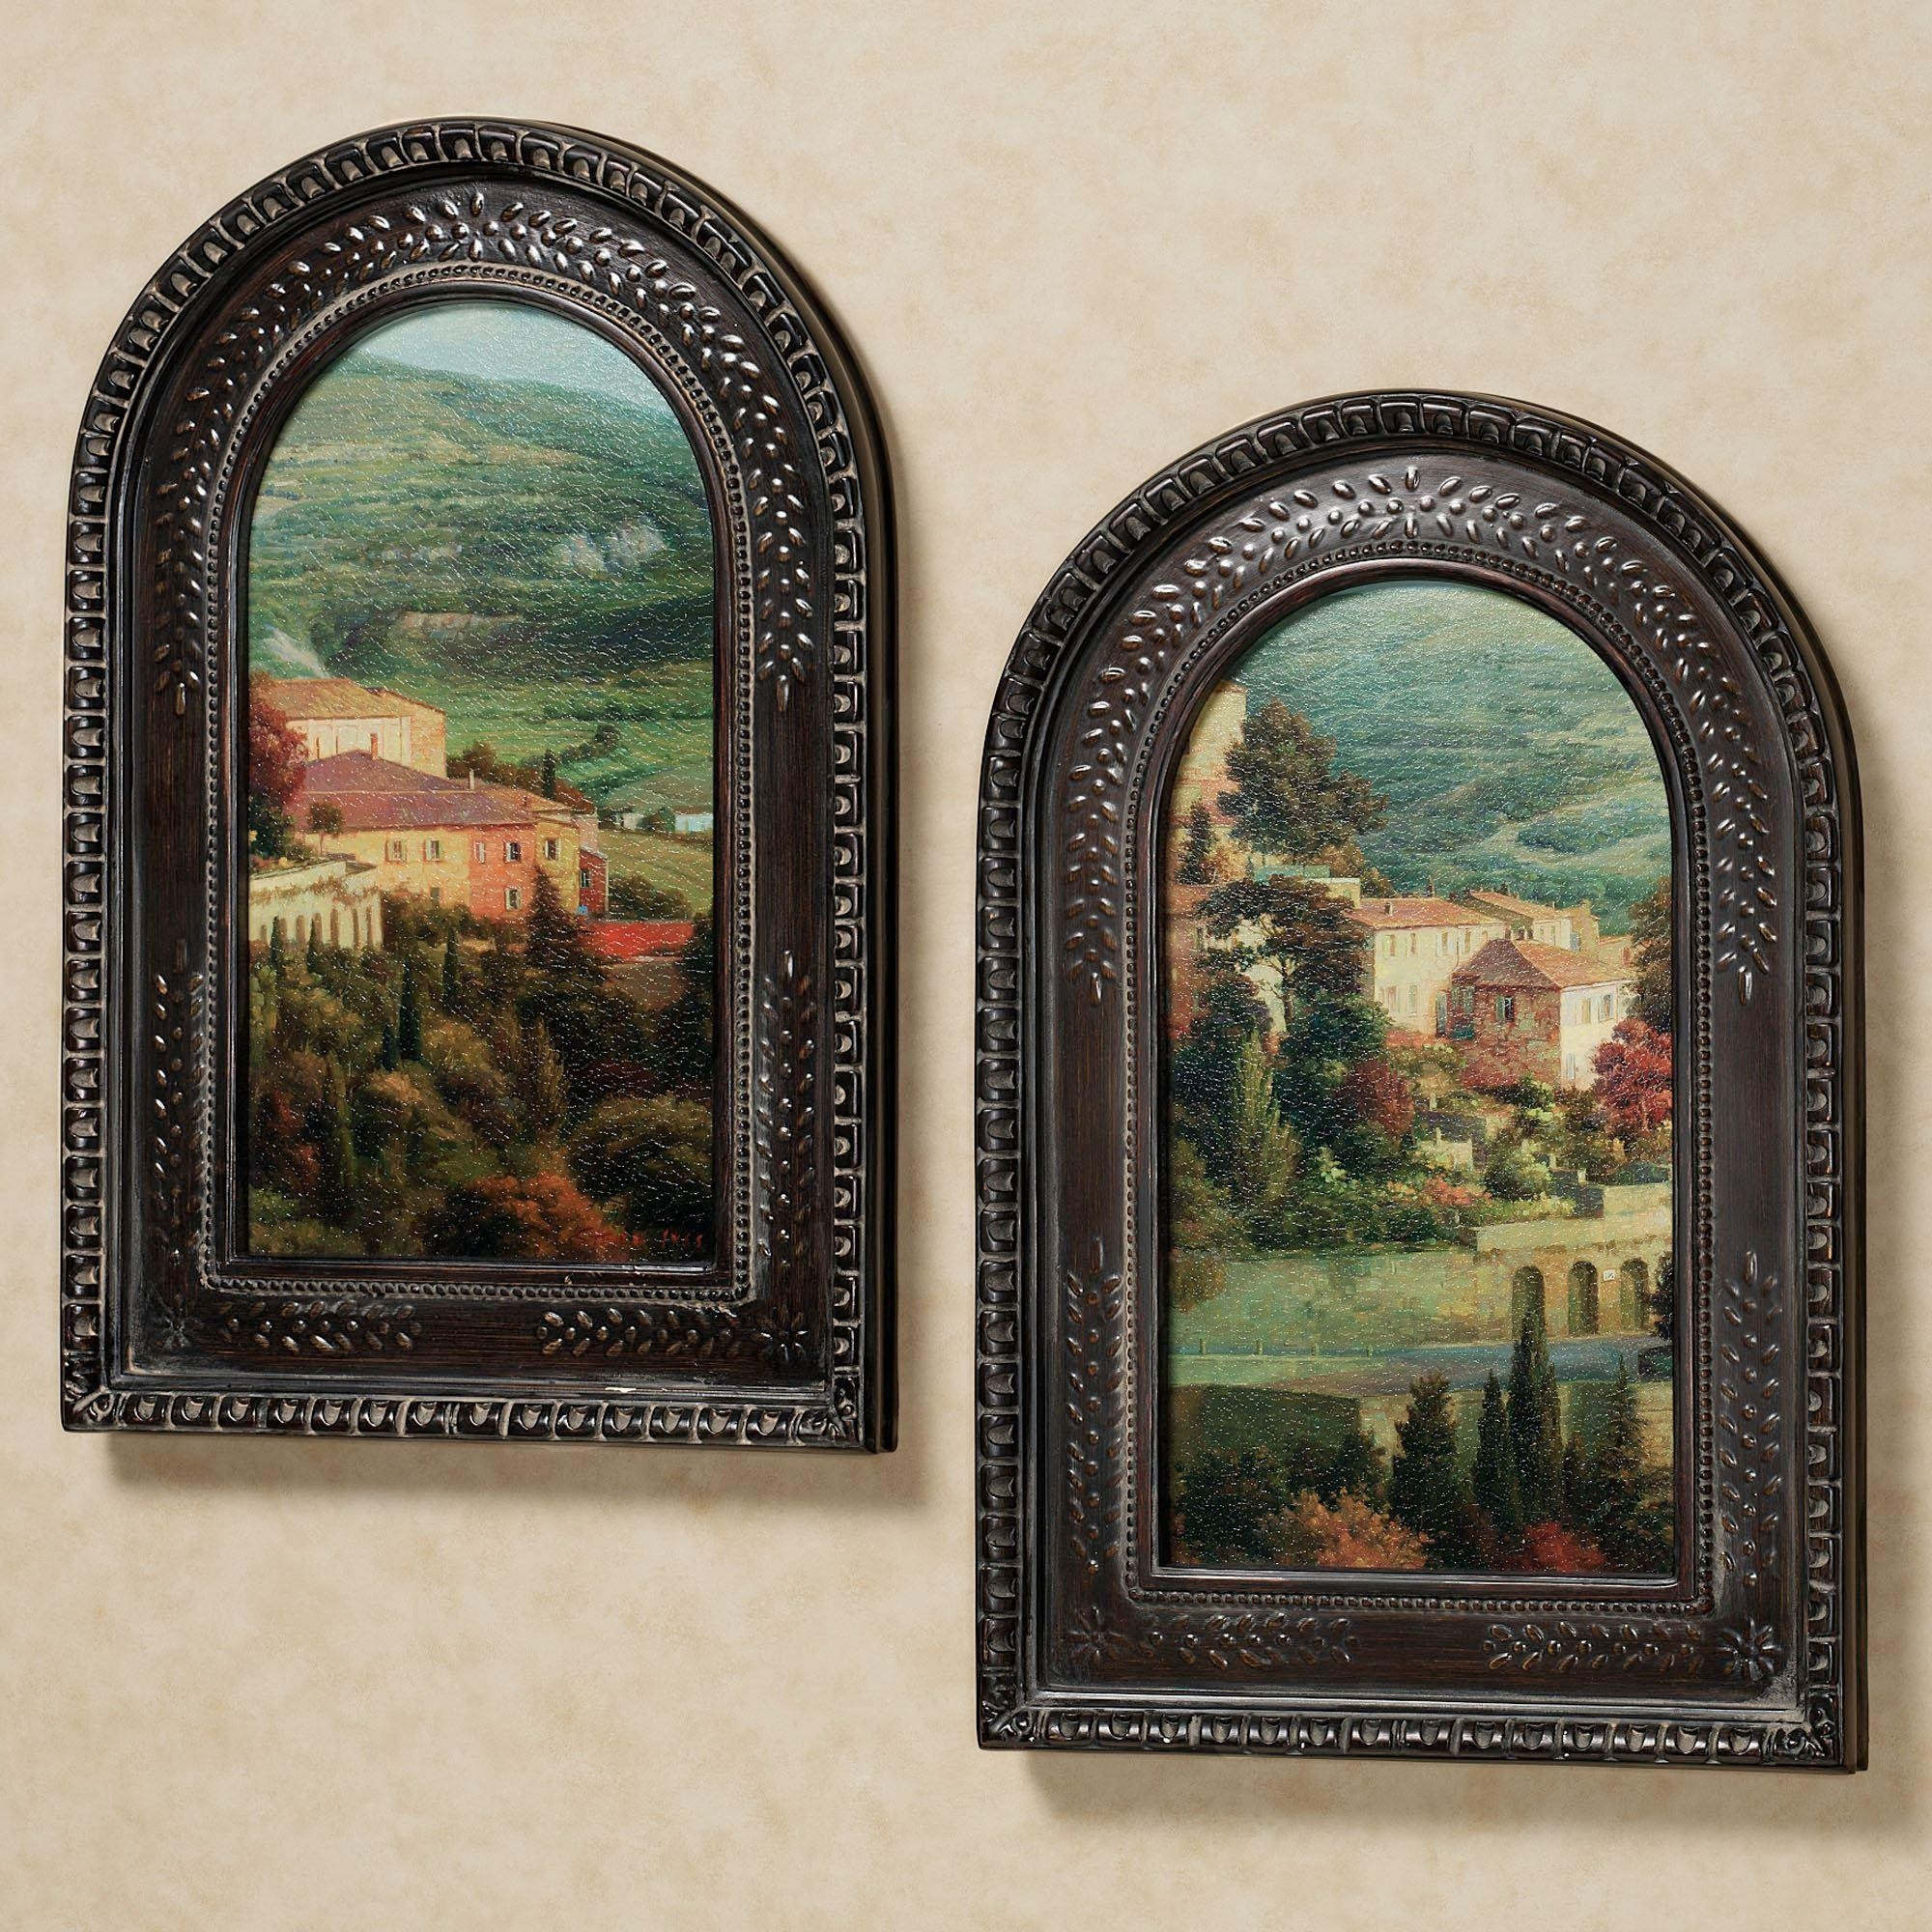 Italian Overlook Framed Wall Art Set Regarding Italian Overlook Framed Wall Art Sets (View 1 of 20)